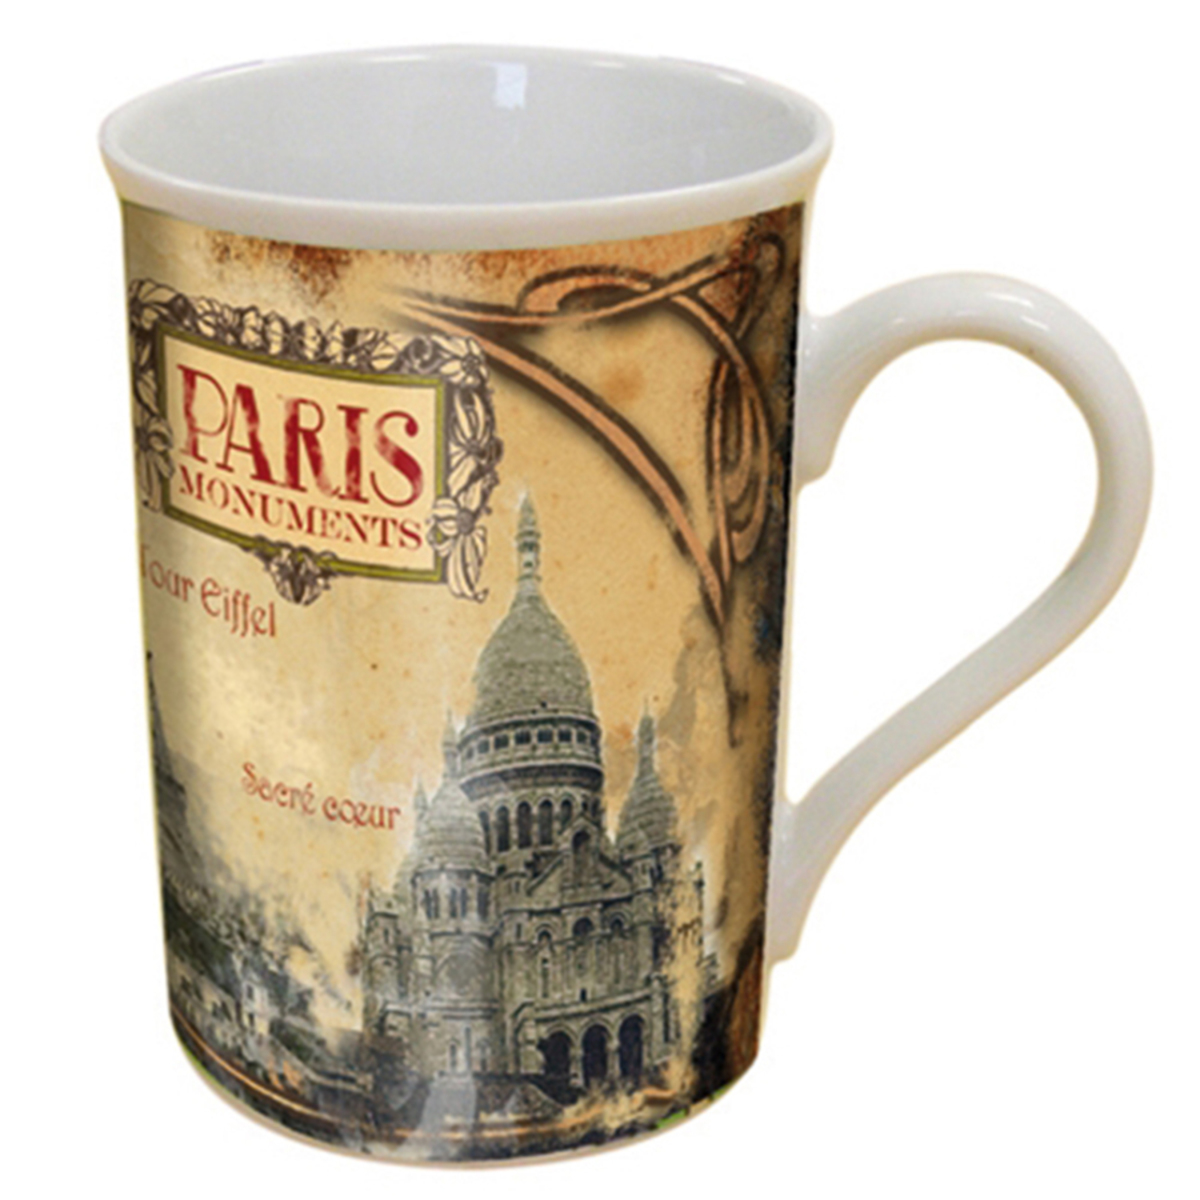 Mug décor Paris Monuments